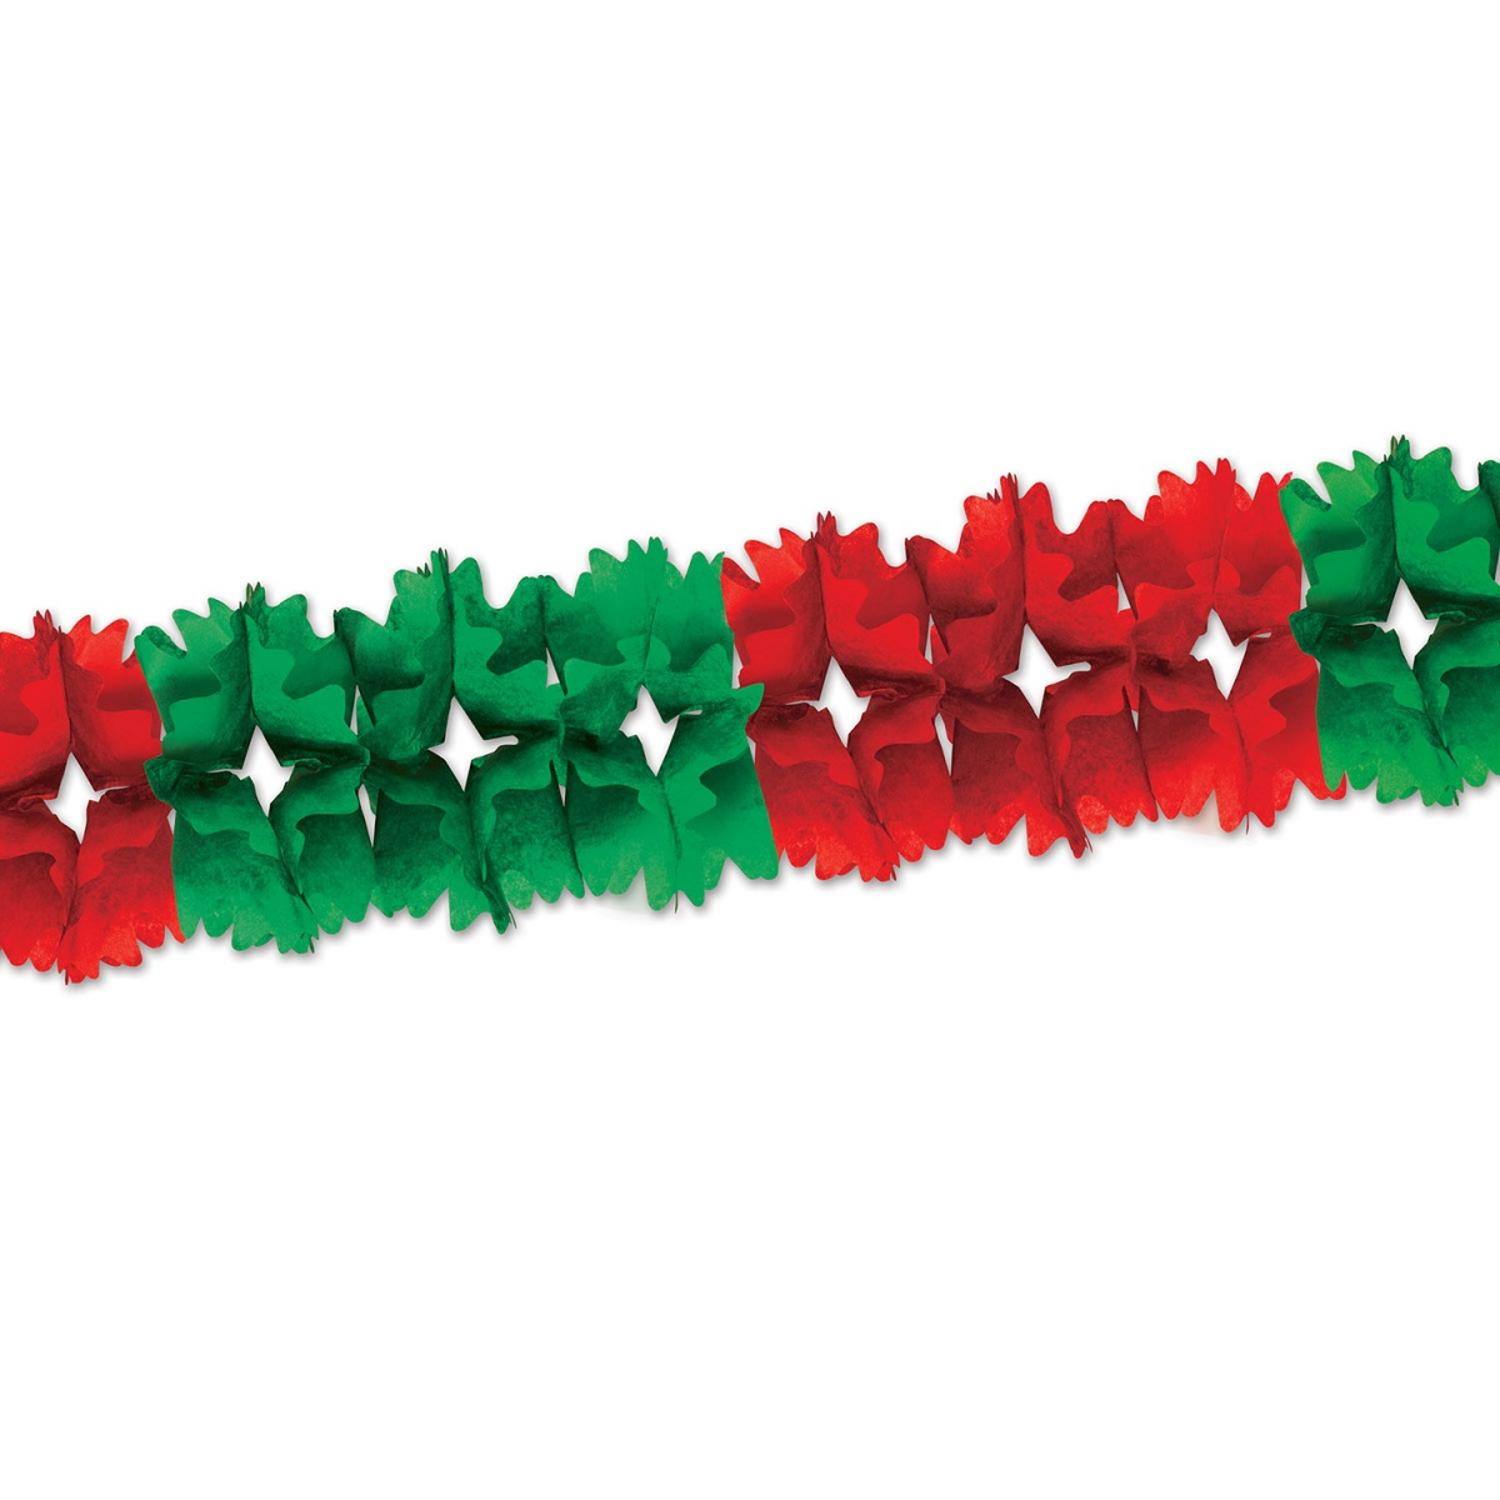 Club Pack of 12 Red and Green Festive Pageant Garland Decorations 14.5'